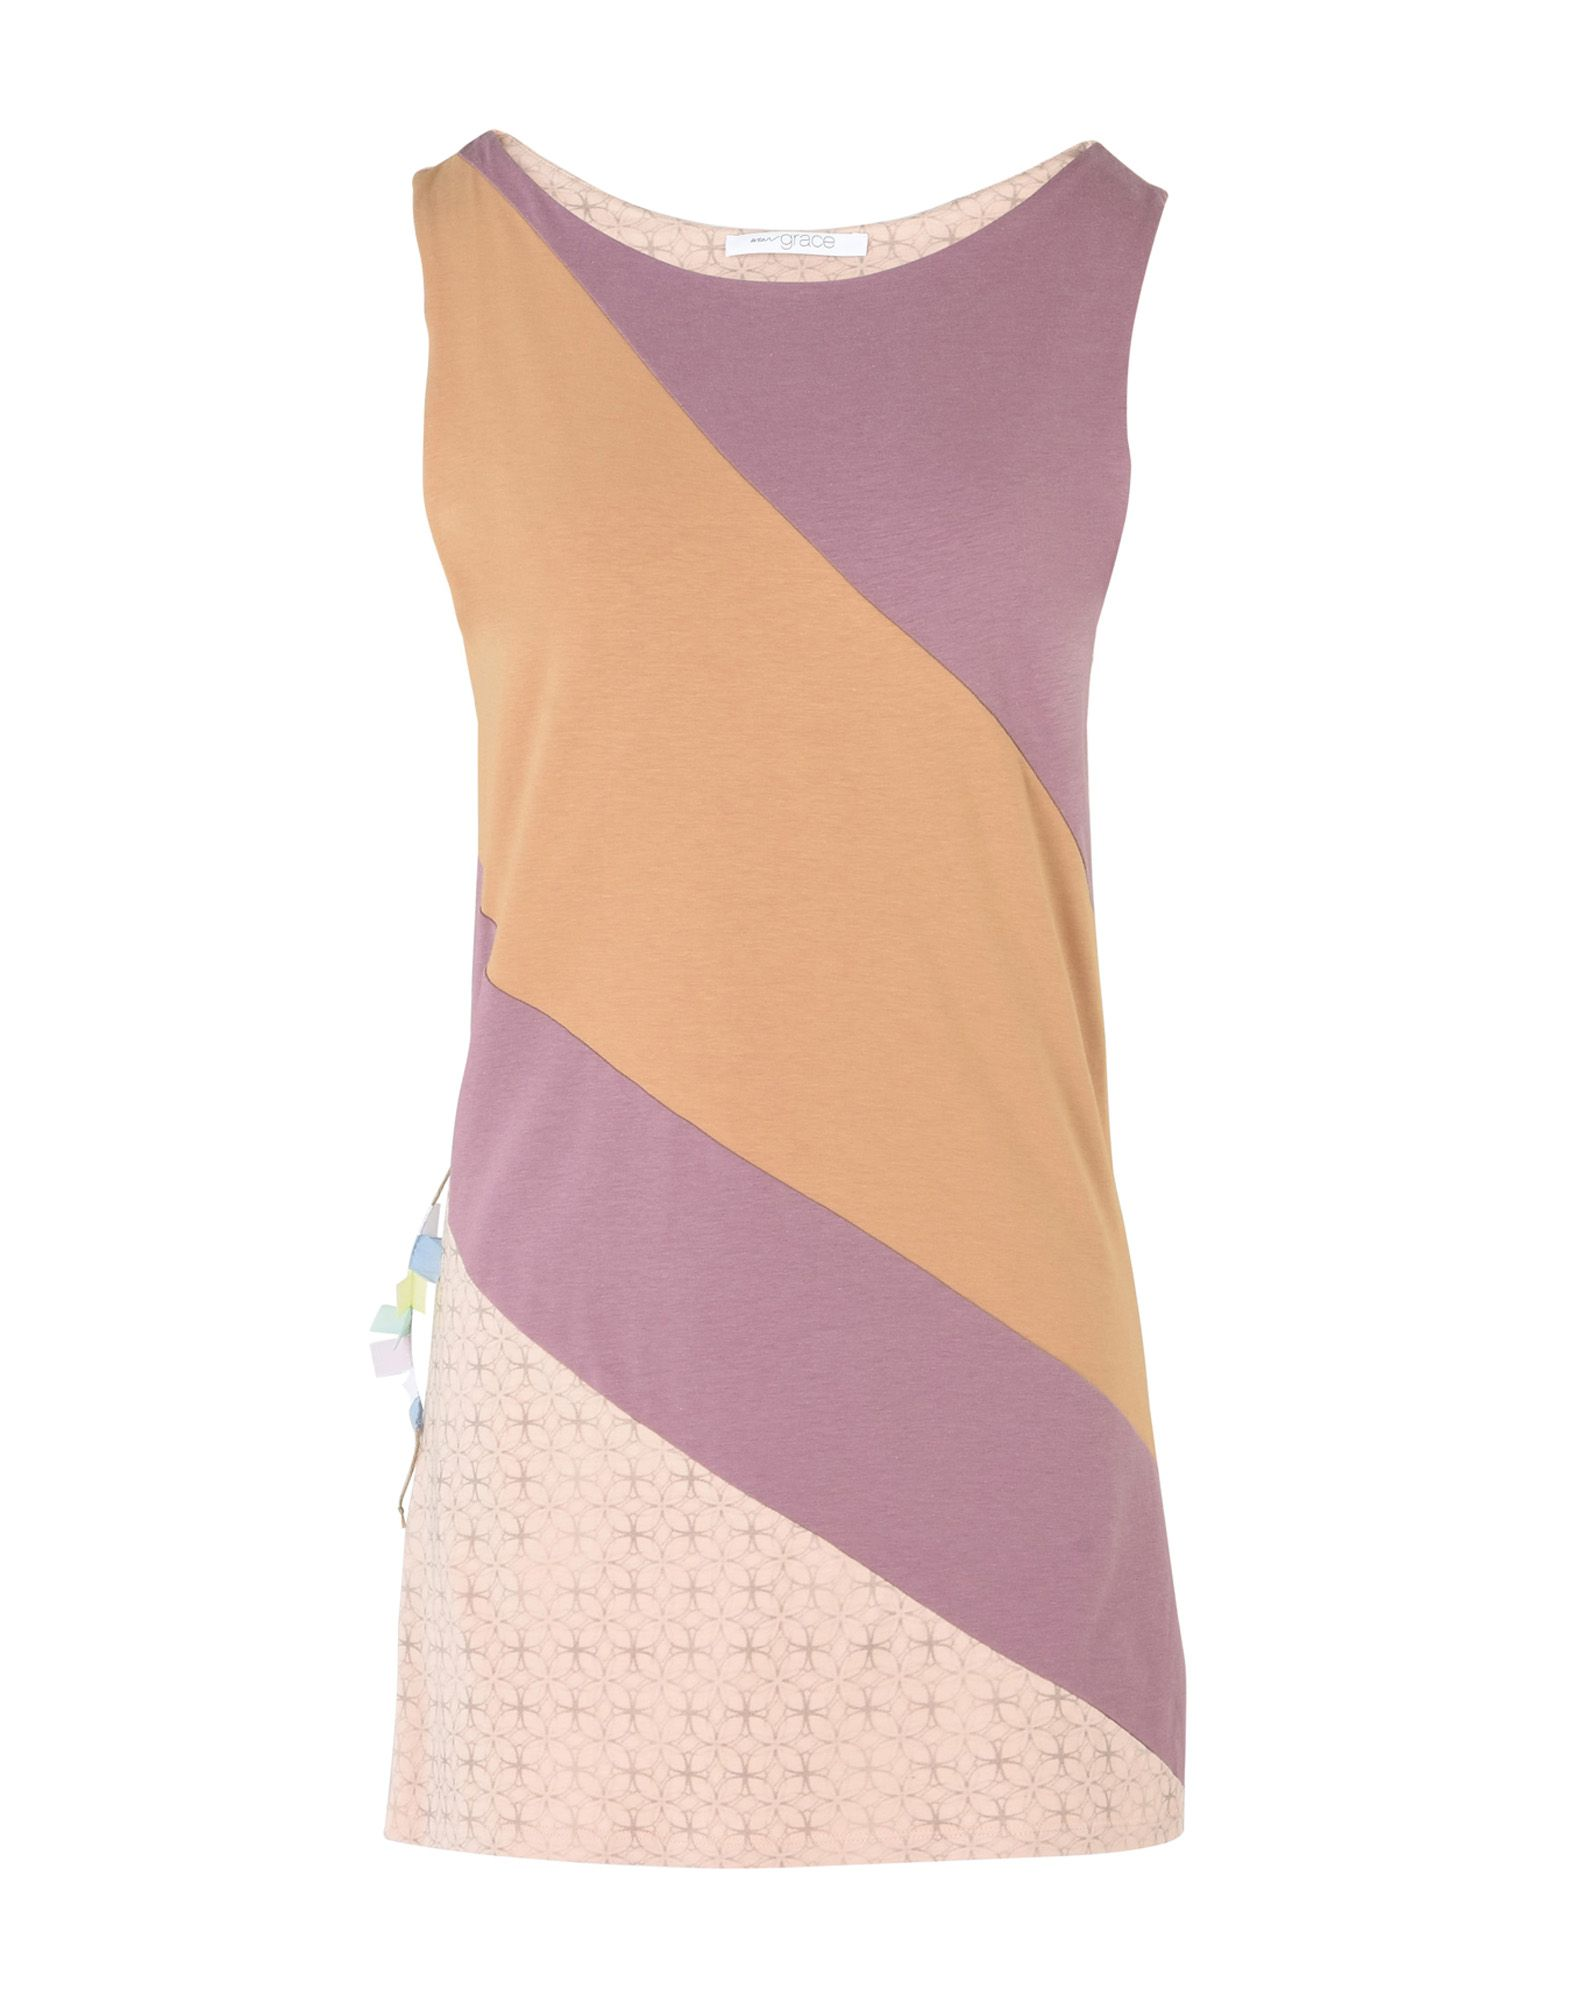 WEARGRACE Sports Bras And Performance Tops in Mauve